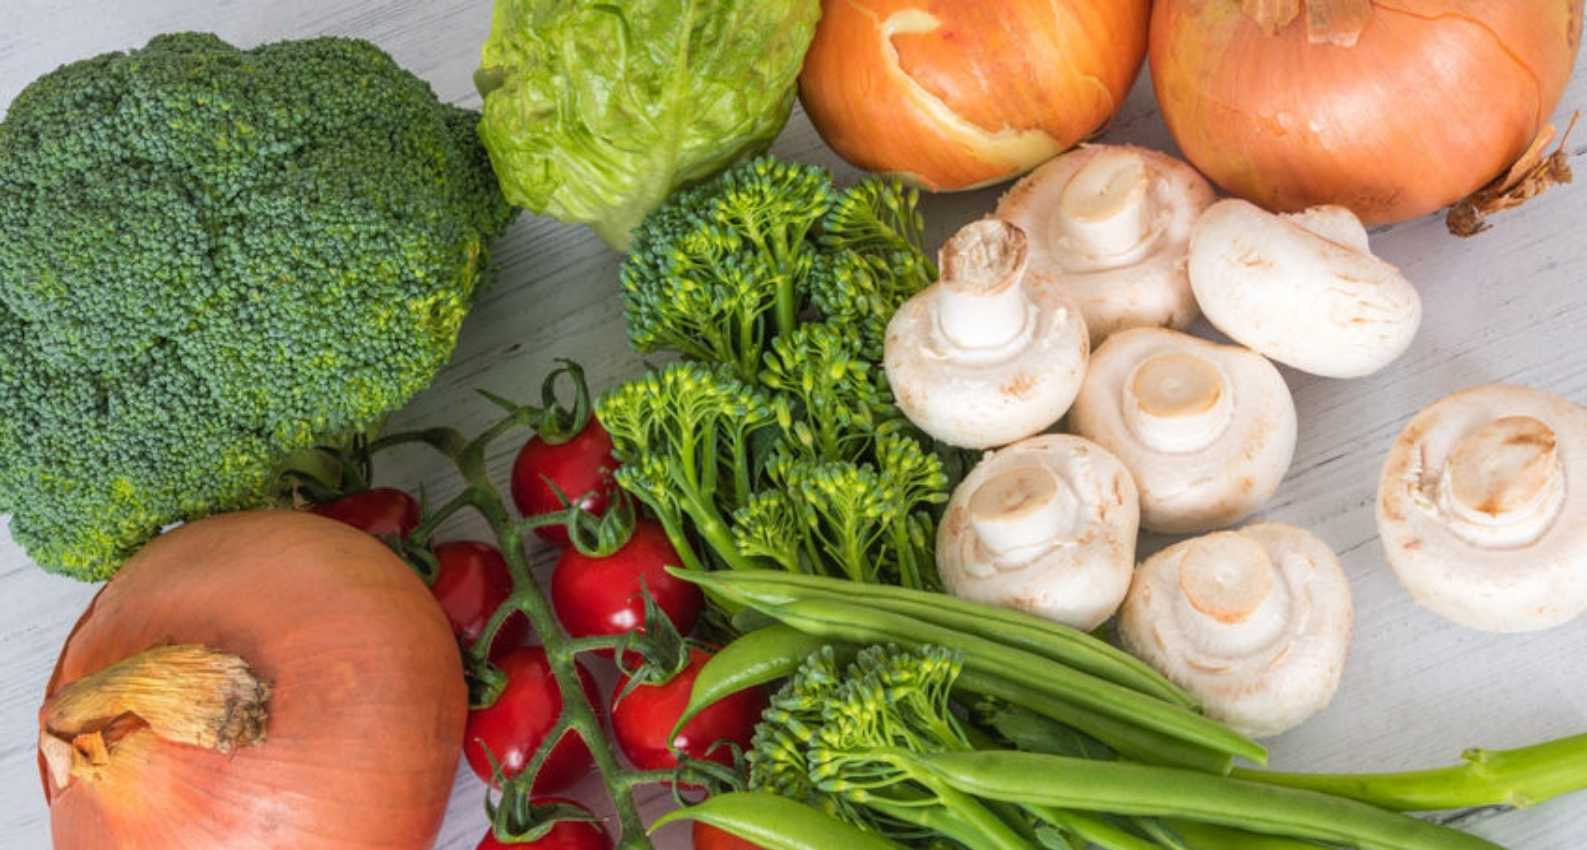 Broccoli, mushrooms, and peppers provide significant anti-inflammatory properties.